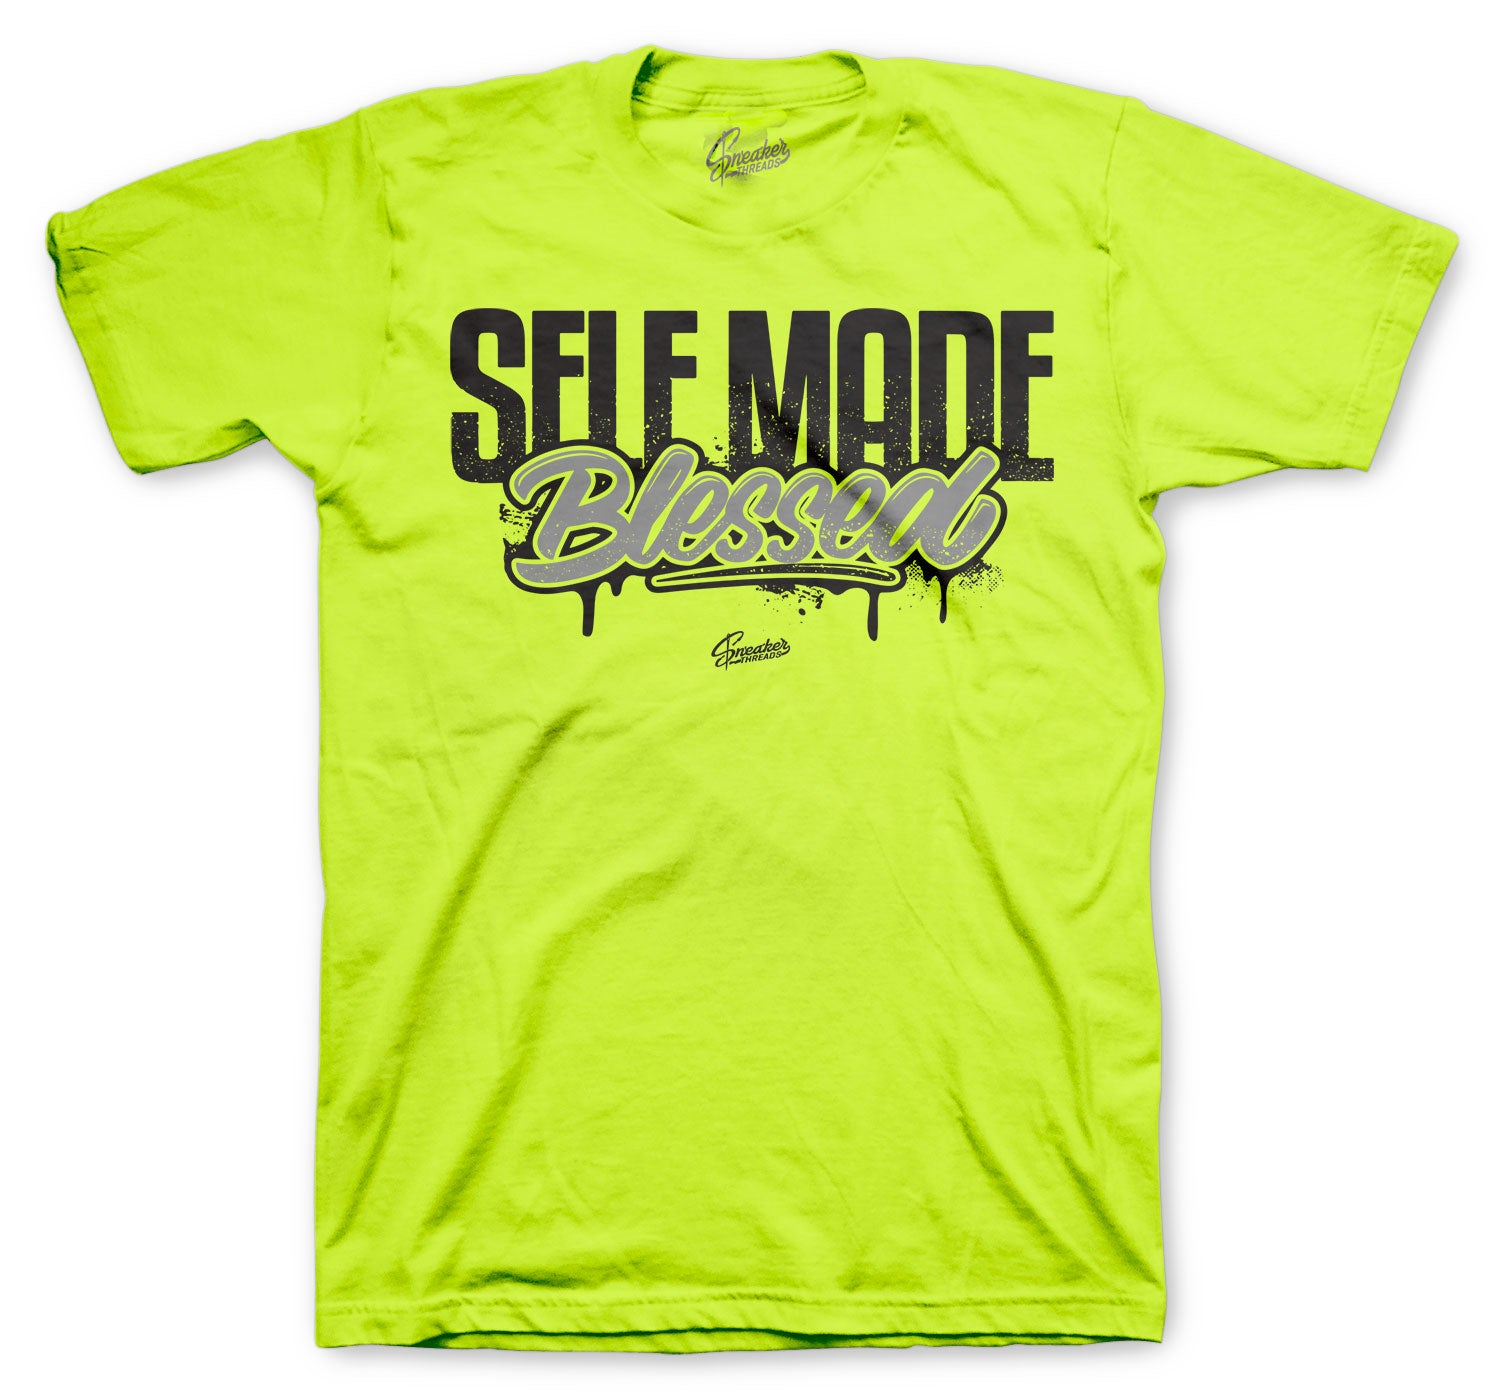 T shirt collection designed to match perfectly with the Jordan 4 retro neon volts